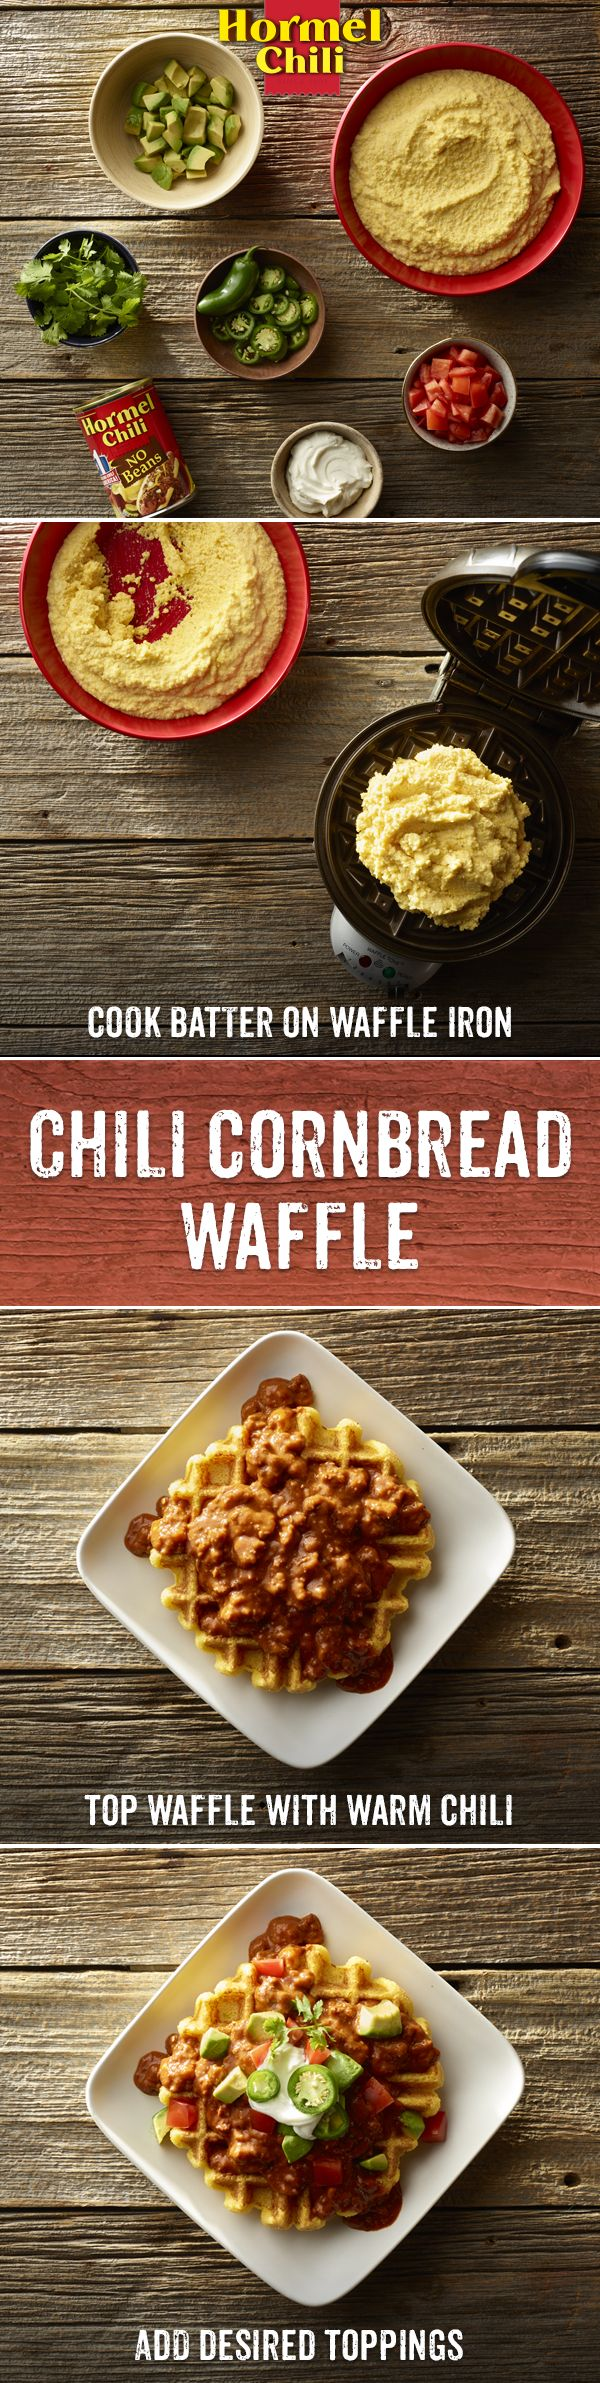 While HORMEL® Chili never gets old, Chili Nation is always hungry for something new. Like this Taco Cornbread Waffle recipe featuring America's favorite chili.   Chili Recipe   Street Food   Chili Taco   Cornbread Waffle   Easy Recipe  